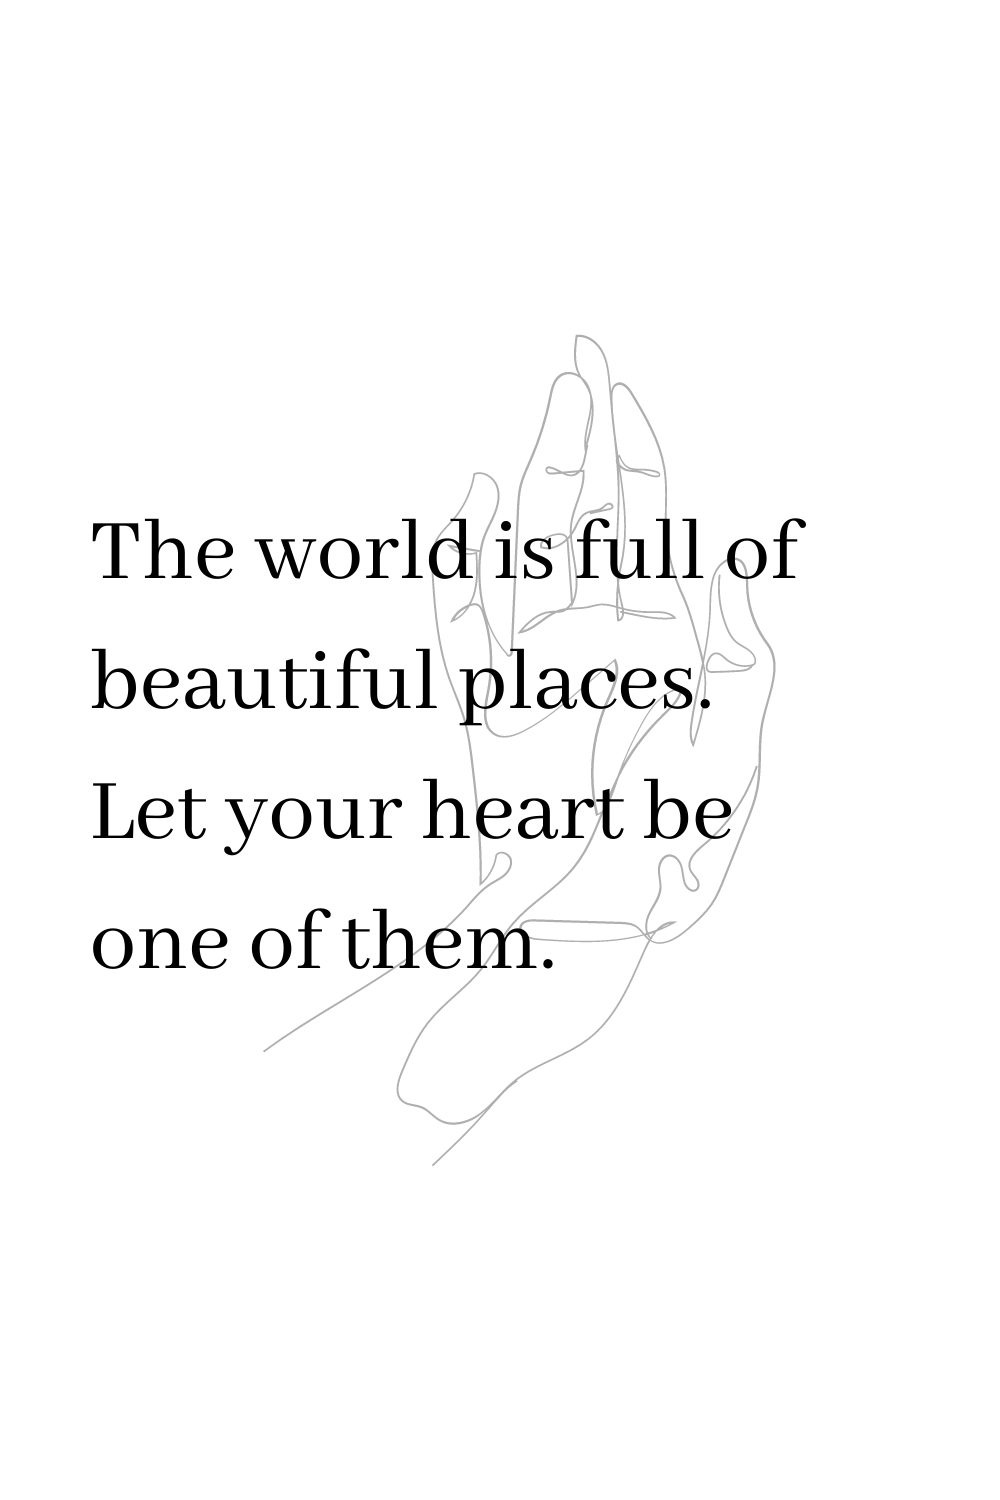 The world is full of beautiful places. Let your heart be one of them.